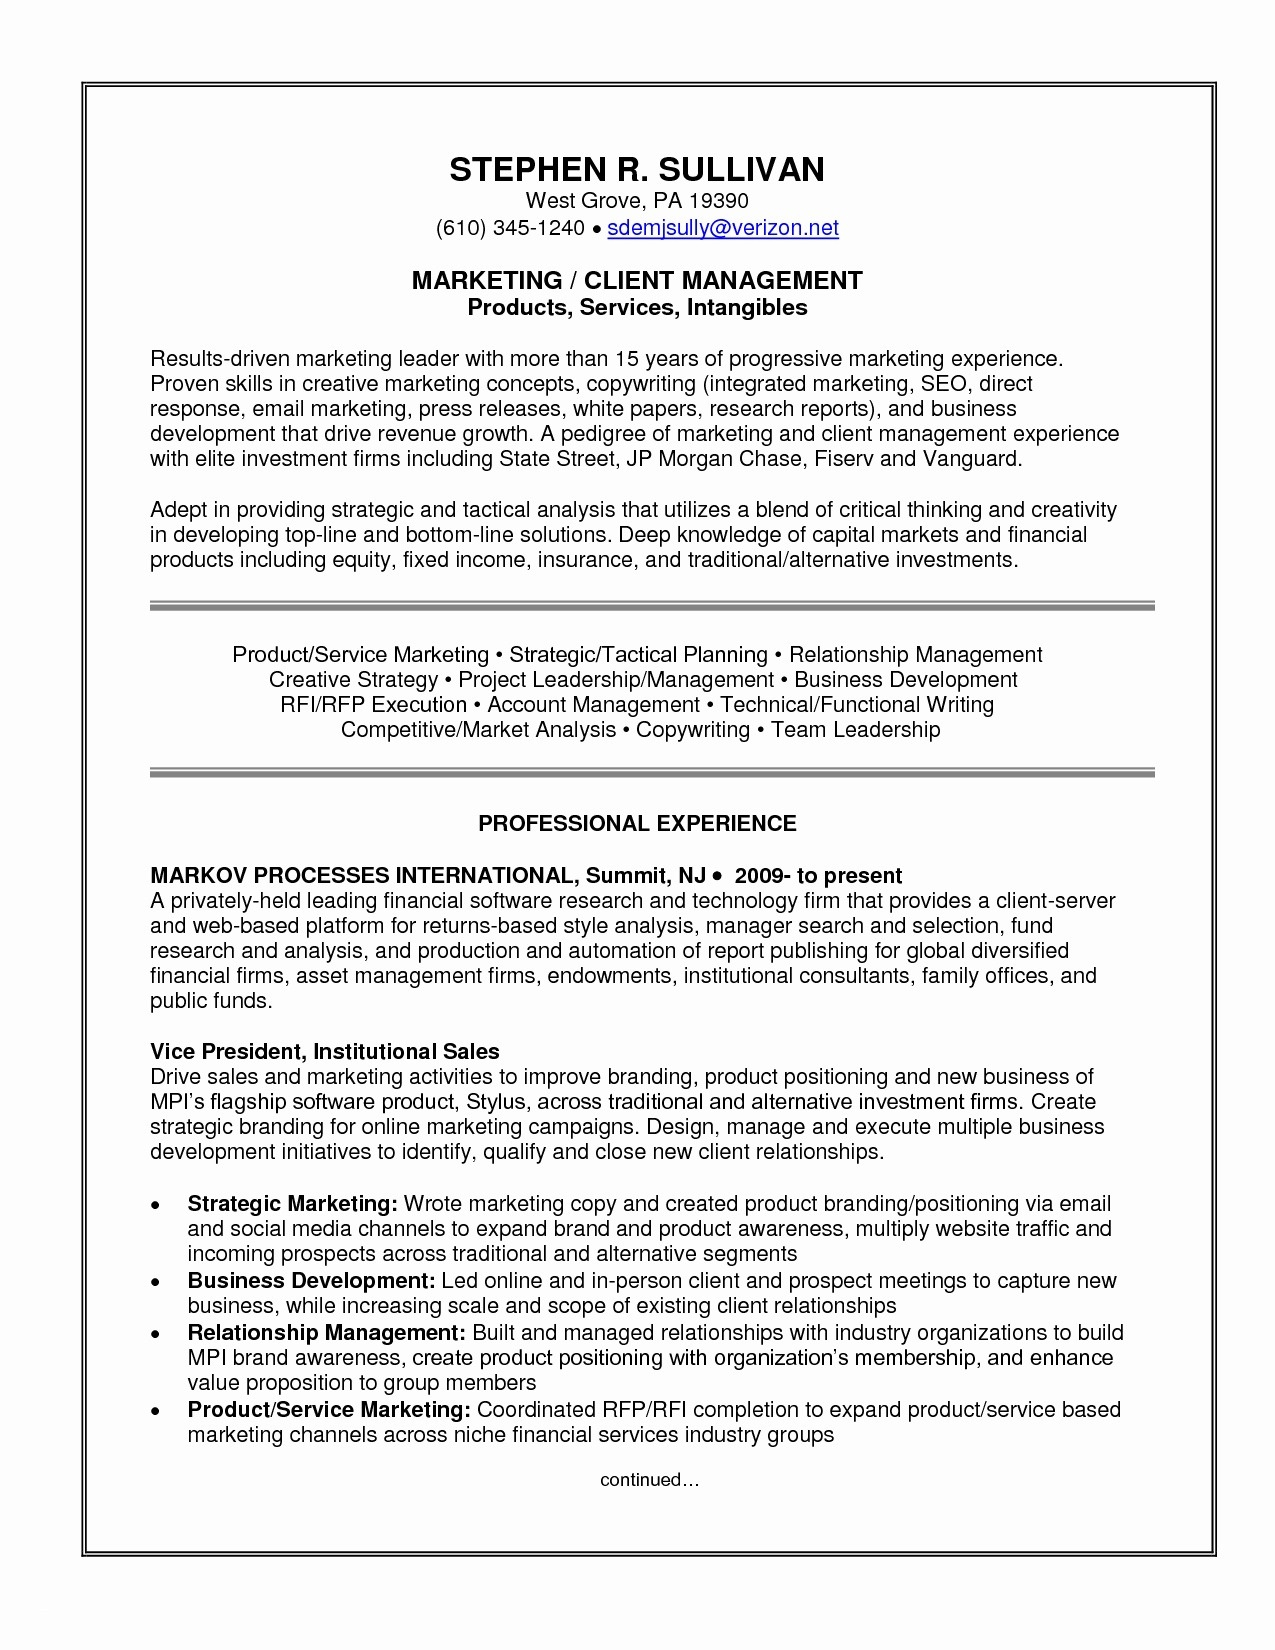 Business Analyst Healthcare Resume - Change Career Objective Examples for Resumes Best Business